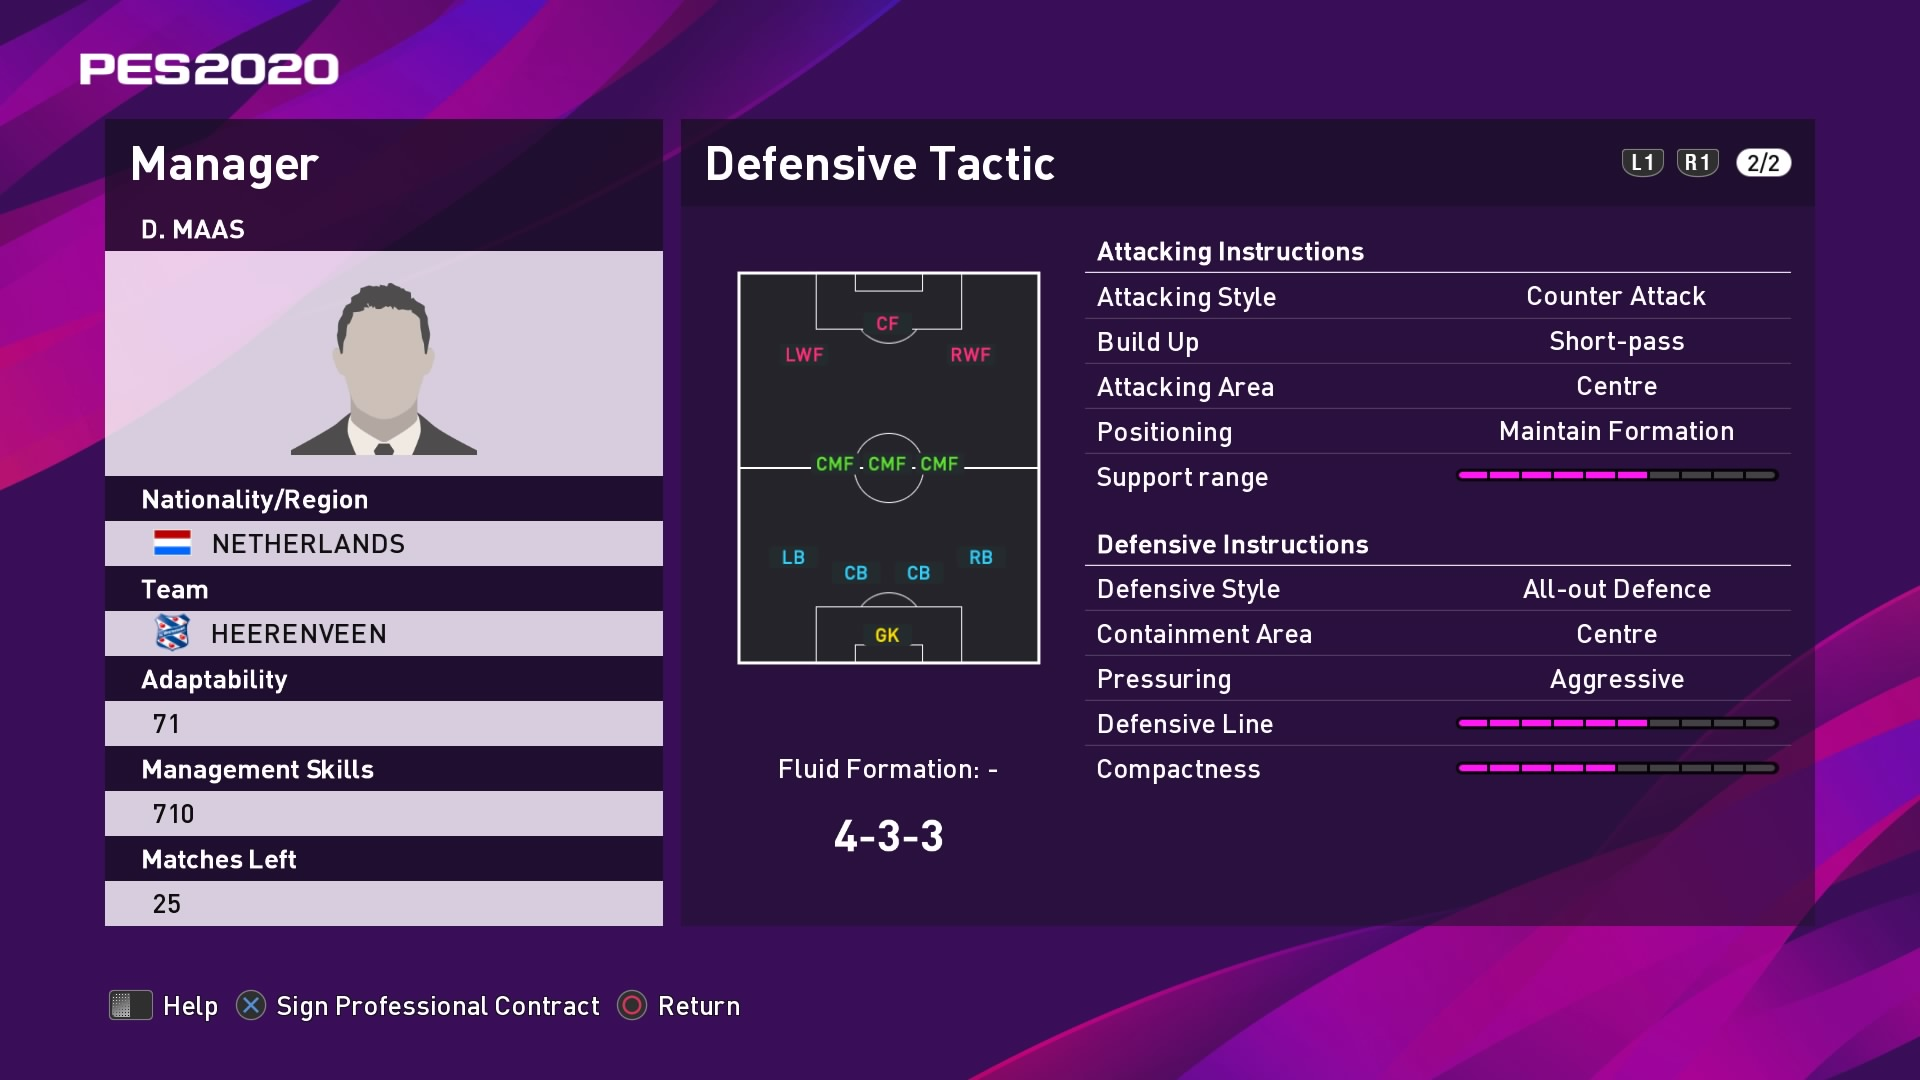 D. Maas (Johnny Jansen) Defensive Tactic in PES 2020 myClub